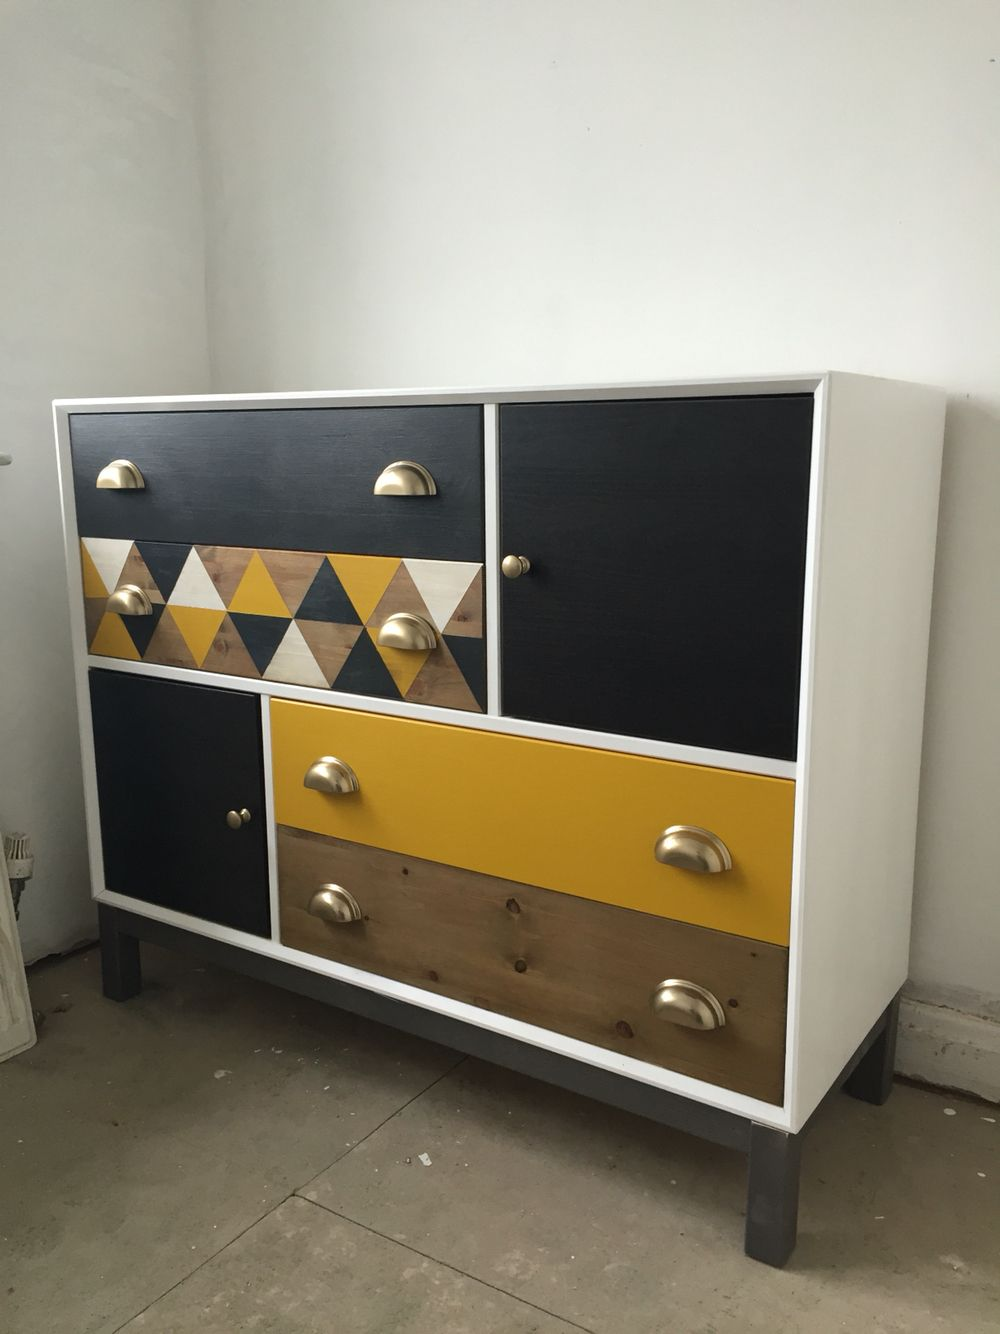 Yellow Möbel Schränke Ikea Nornas Chest Of Drawers Hack Yellow Grey Geometric Room